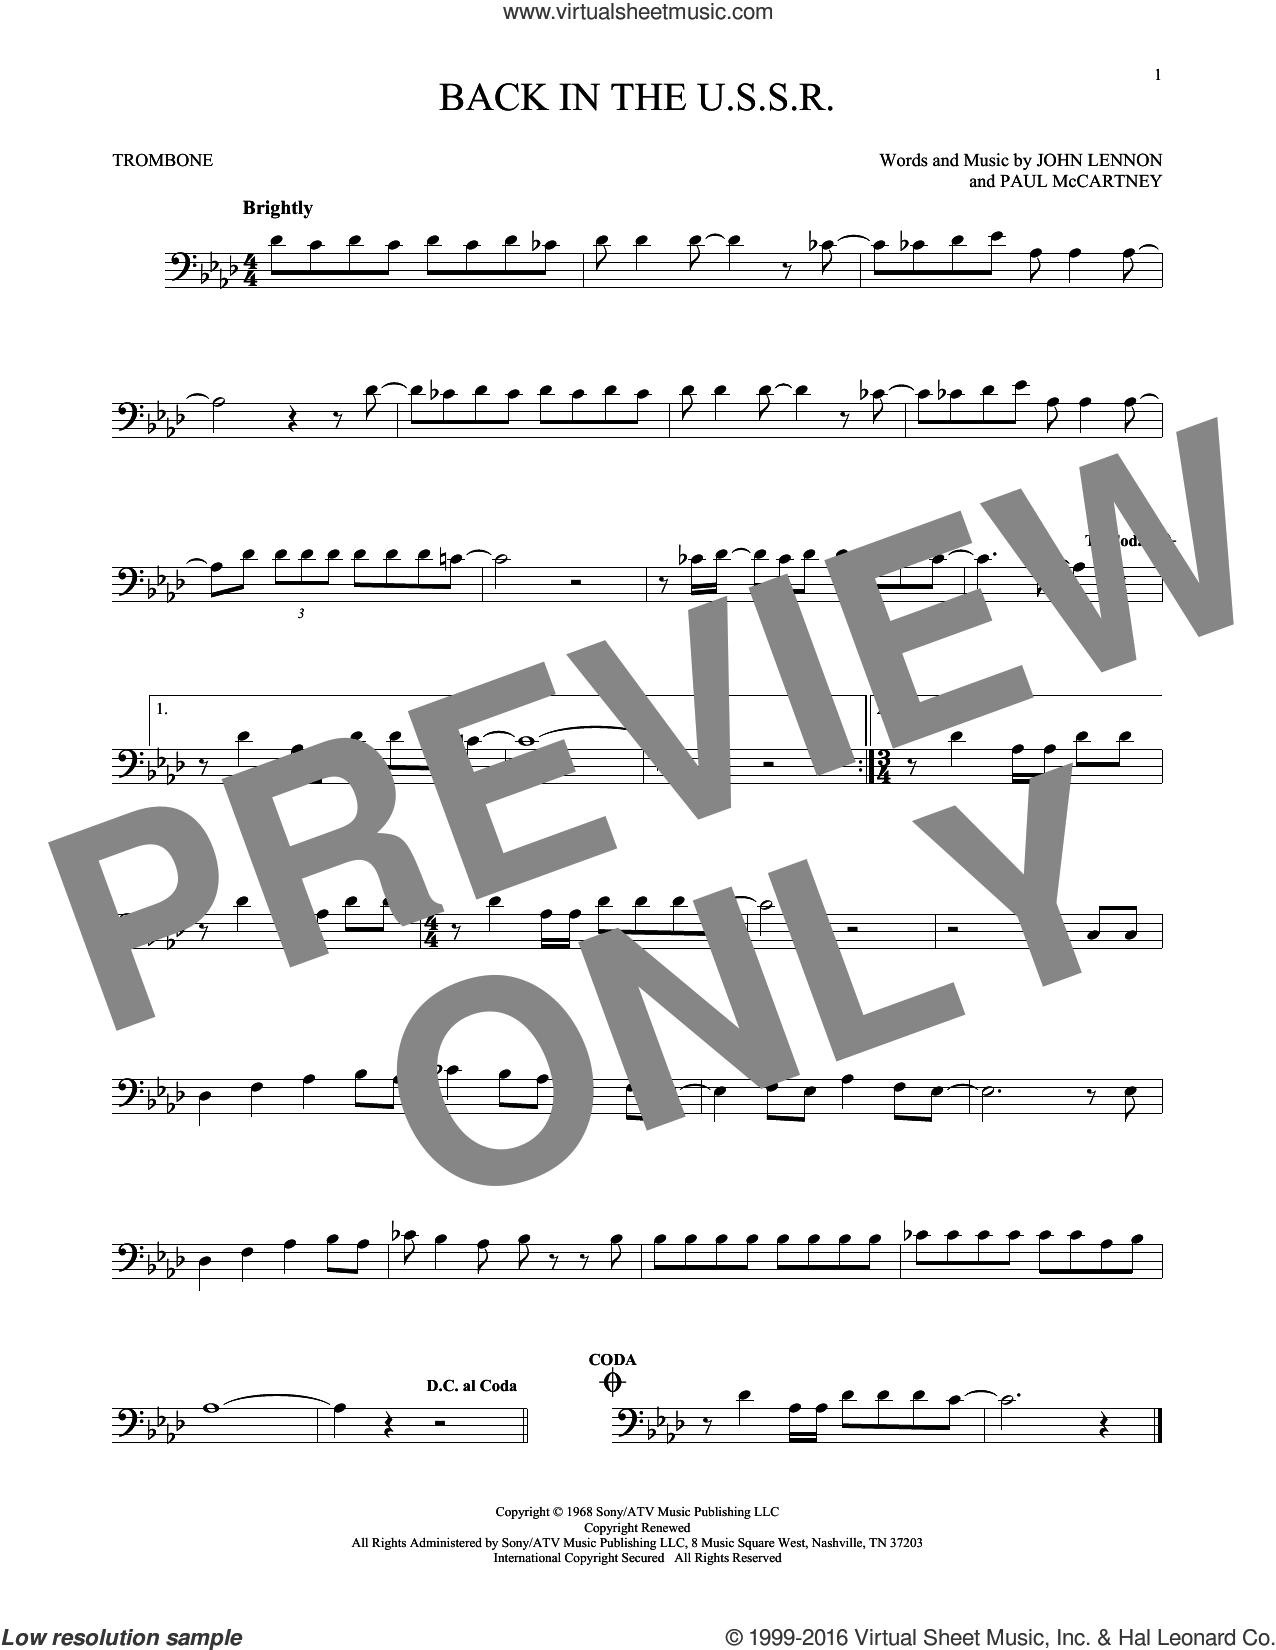 Back In The U.S.S.R. sheet music for trombone solo by Paul McCartney